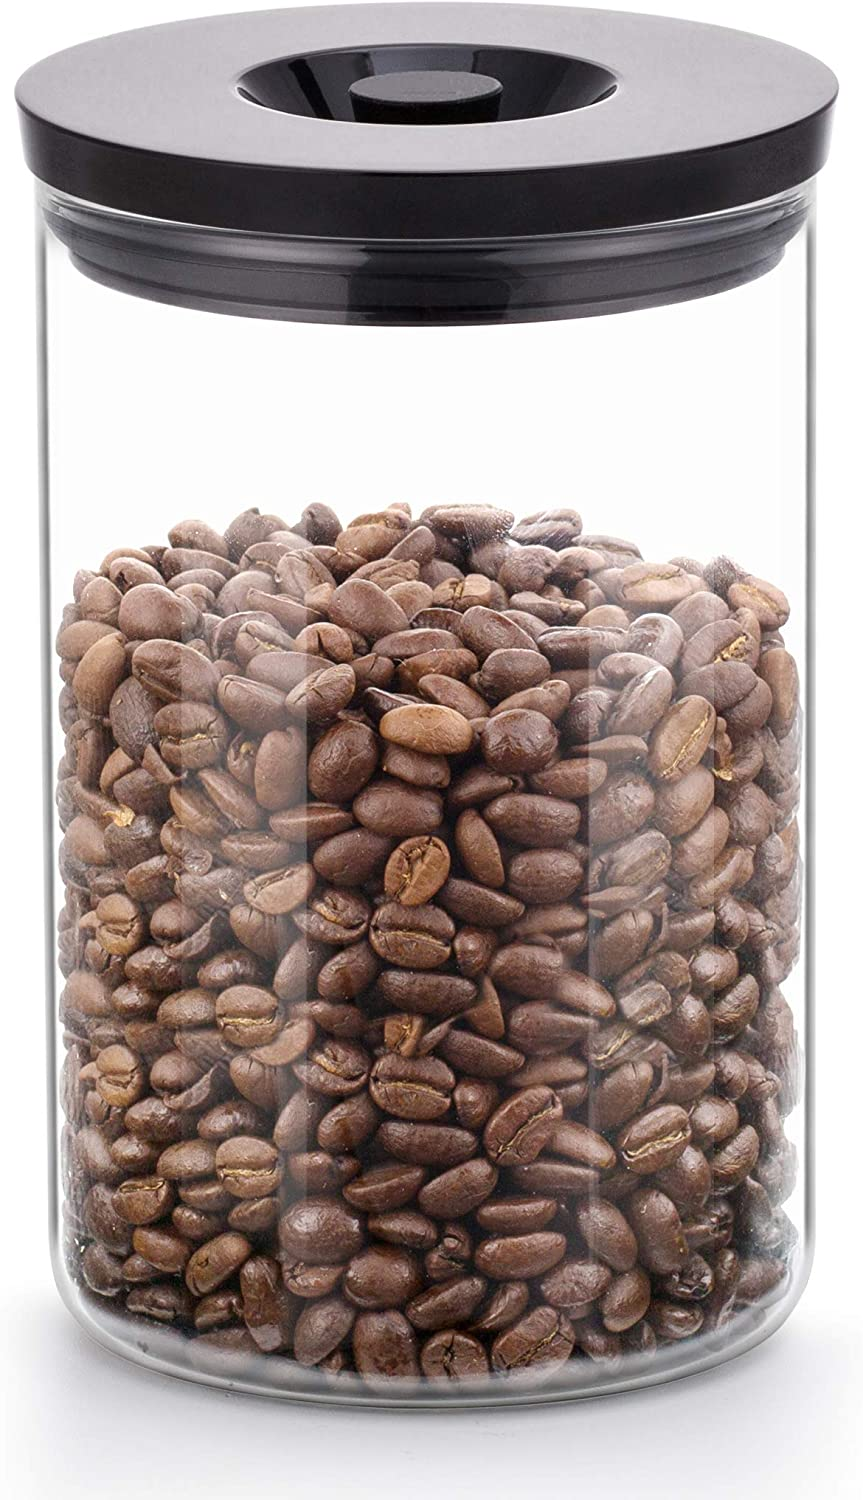 SAKI Large Coffee Canister 34 Oz (1000 mL) Glass Container for Ground, Whole Beans - Food Grade Lid with Airtight Rubber Seal - Storage Jar with CO2 Exhaust Button for Home, Pantry, Office